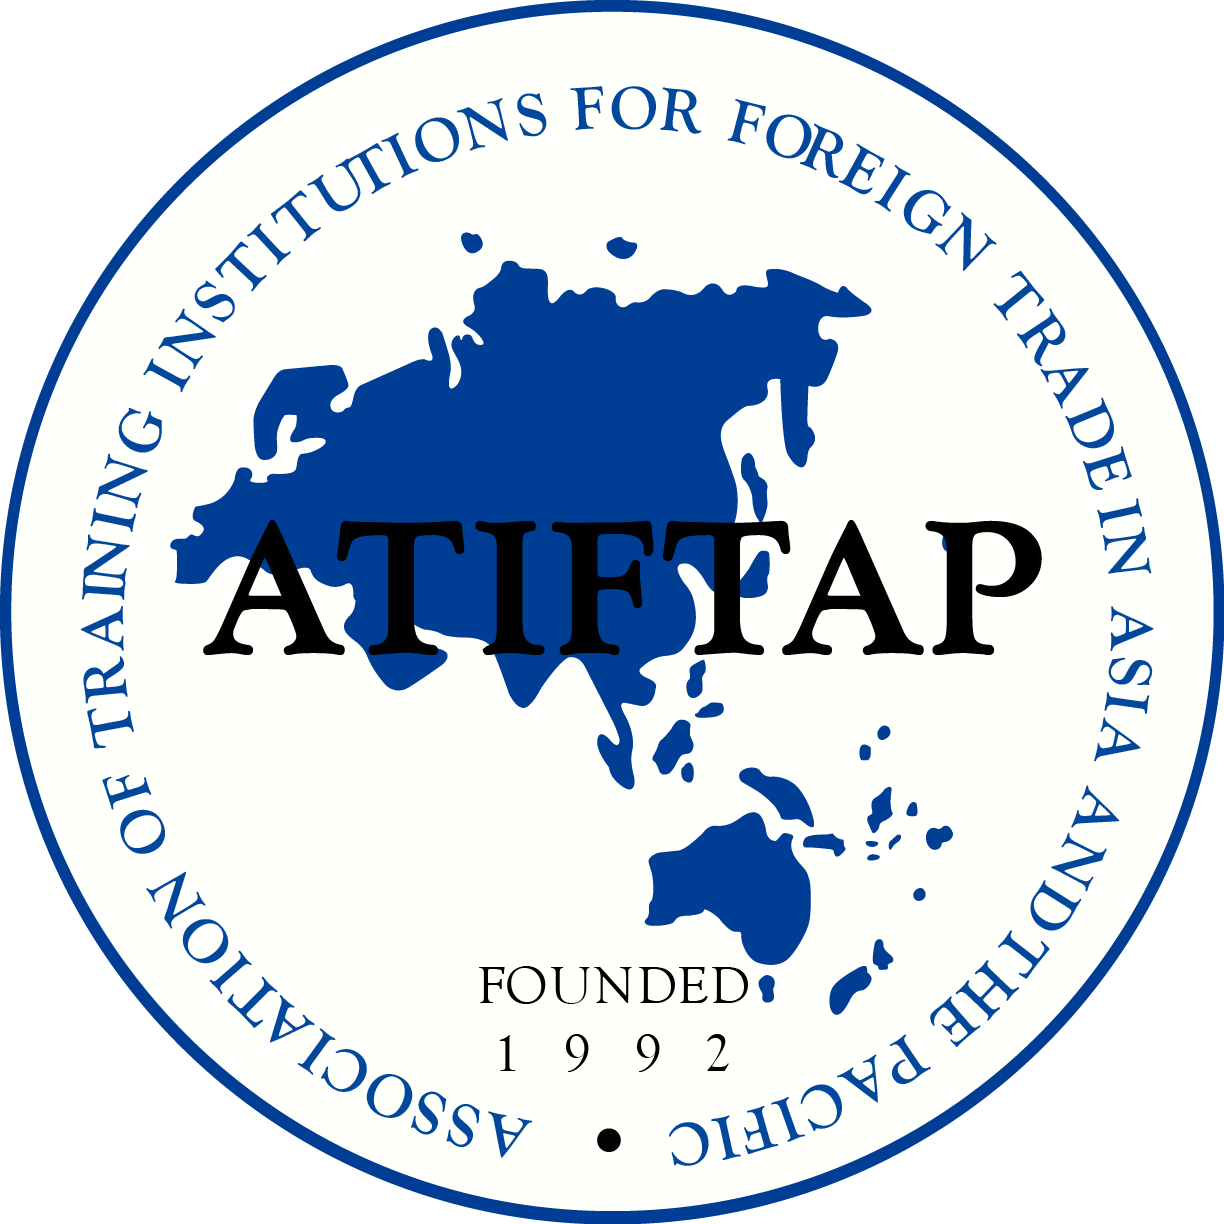 ATIFTAP - Association of Training Institutions for Foreign Trade in Asia and the Pacific